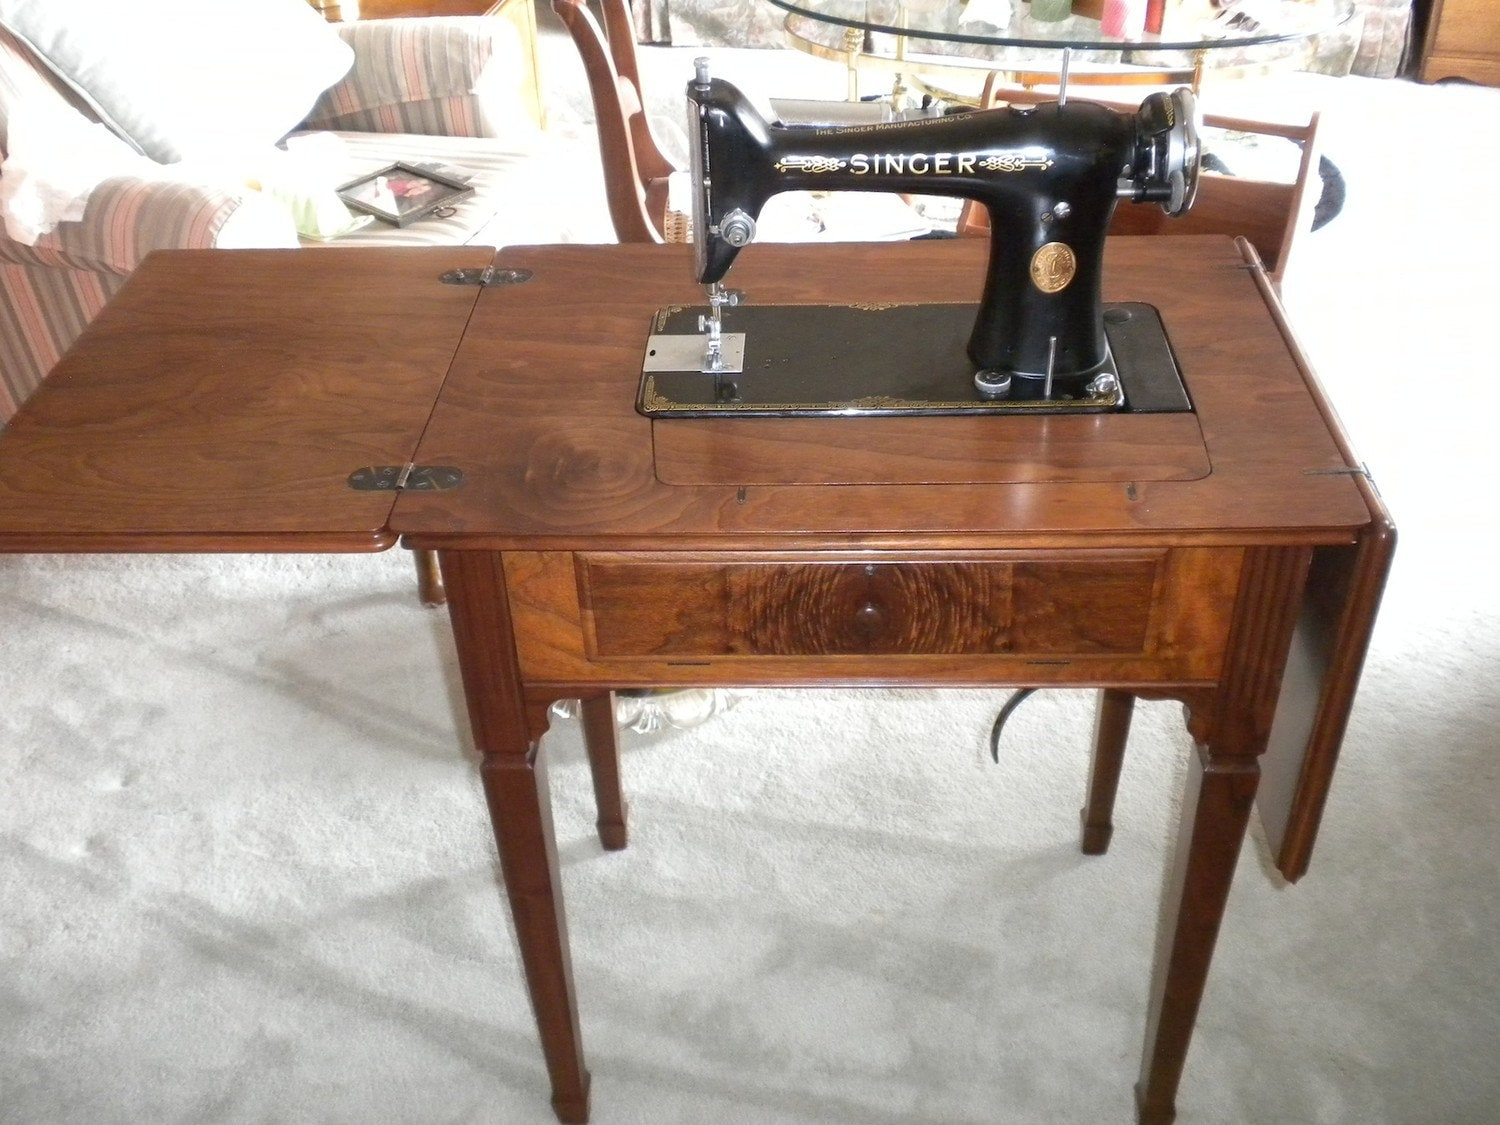 Vintage Singer 101 Sewing Machine and Cabinet Pick-up only